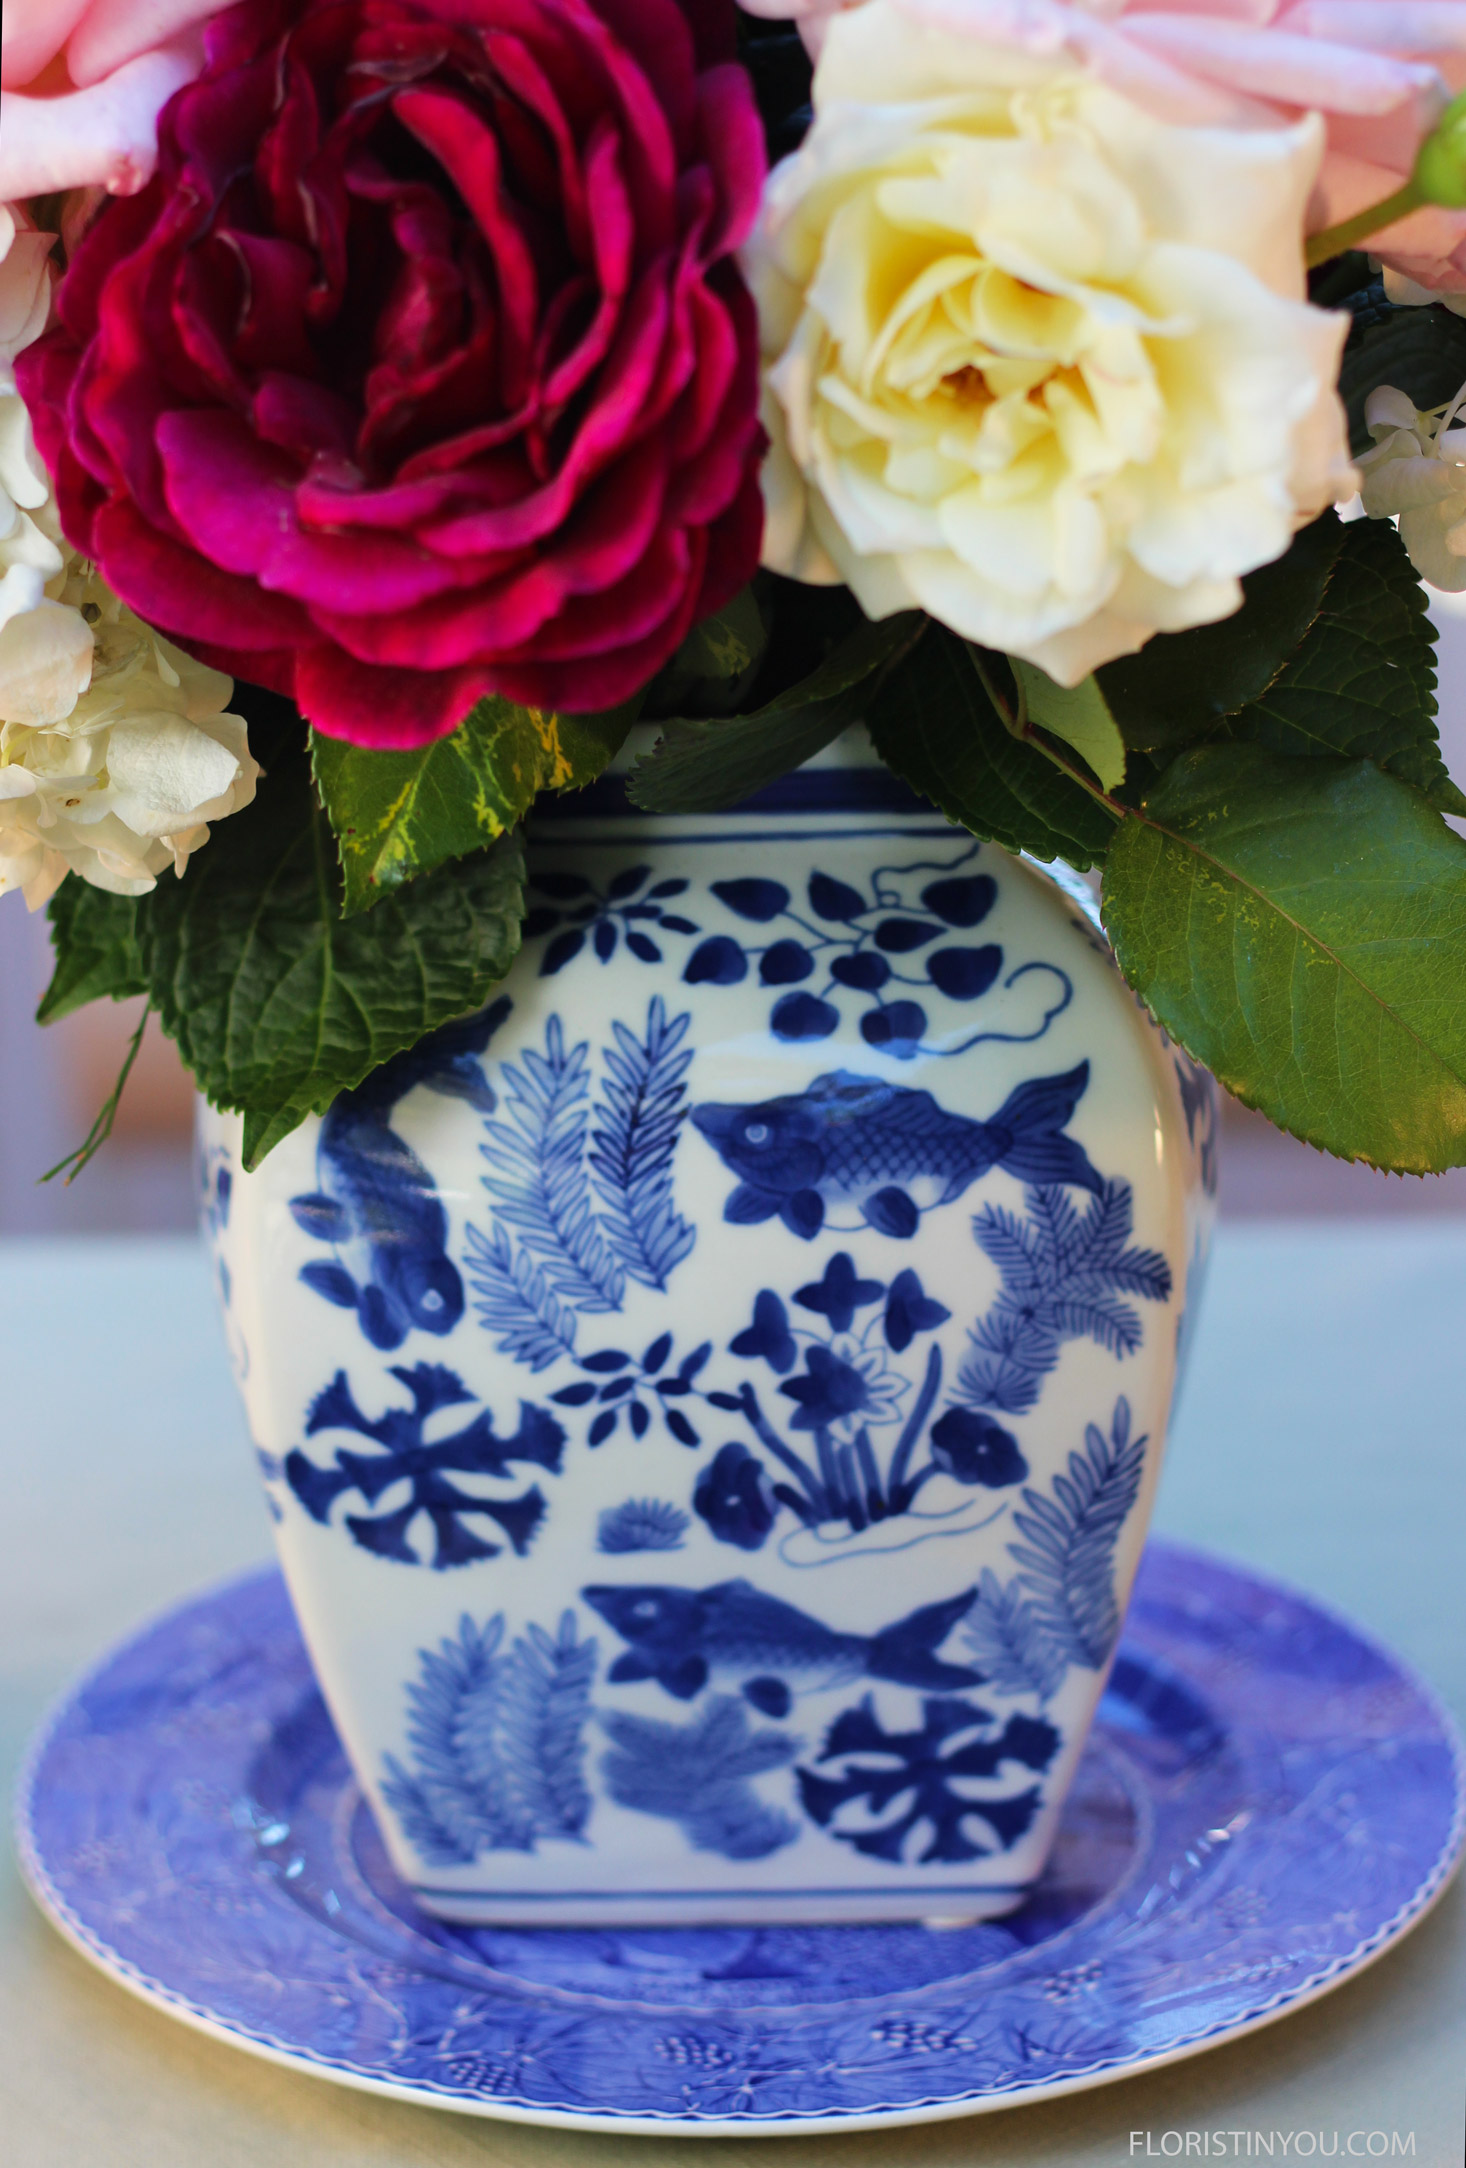 These could have been adorning the dinning room of Jane Austin's home. Blue and white with roses is classic and timeless.